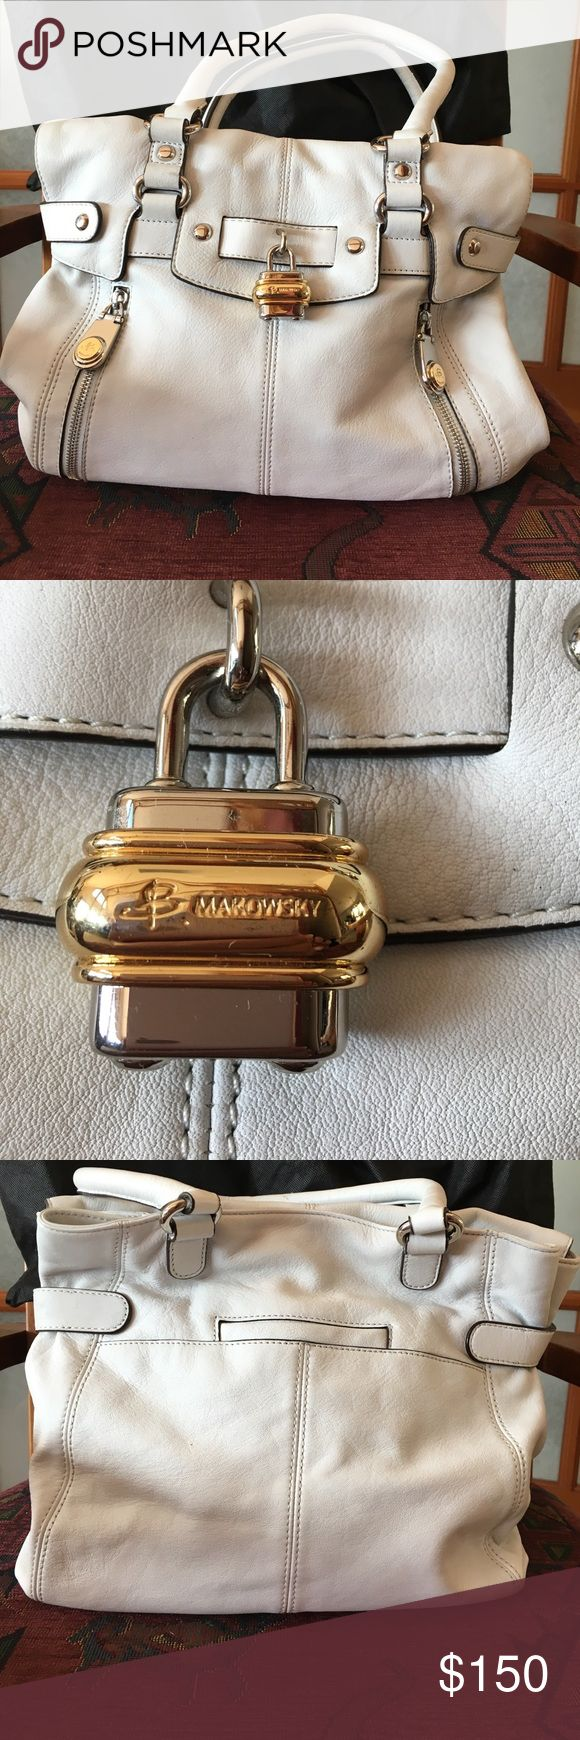 B, MAKOWSKY LEATHER HANDBAG B Makowsky cream colored leather bag, with all the bells and whistles. Small wear on strap as shown in pic. b. makowsky Bags Shoulder Bags